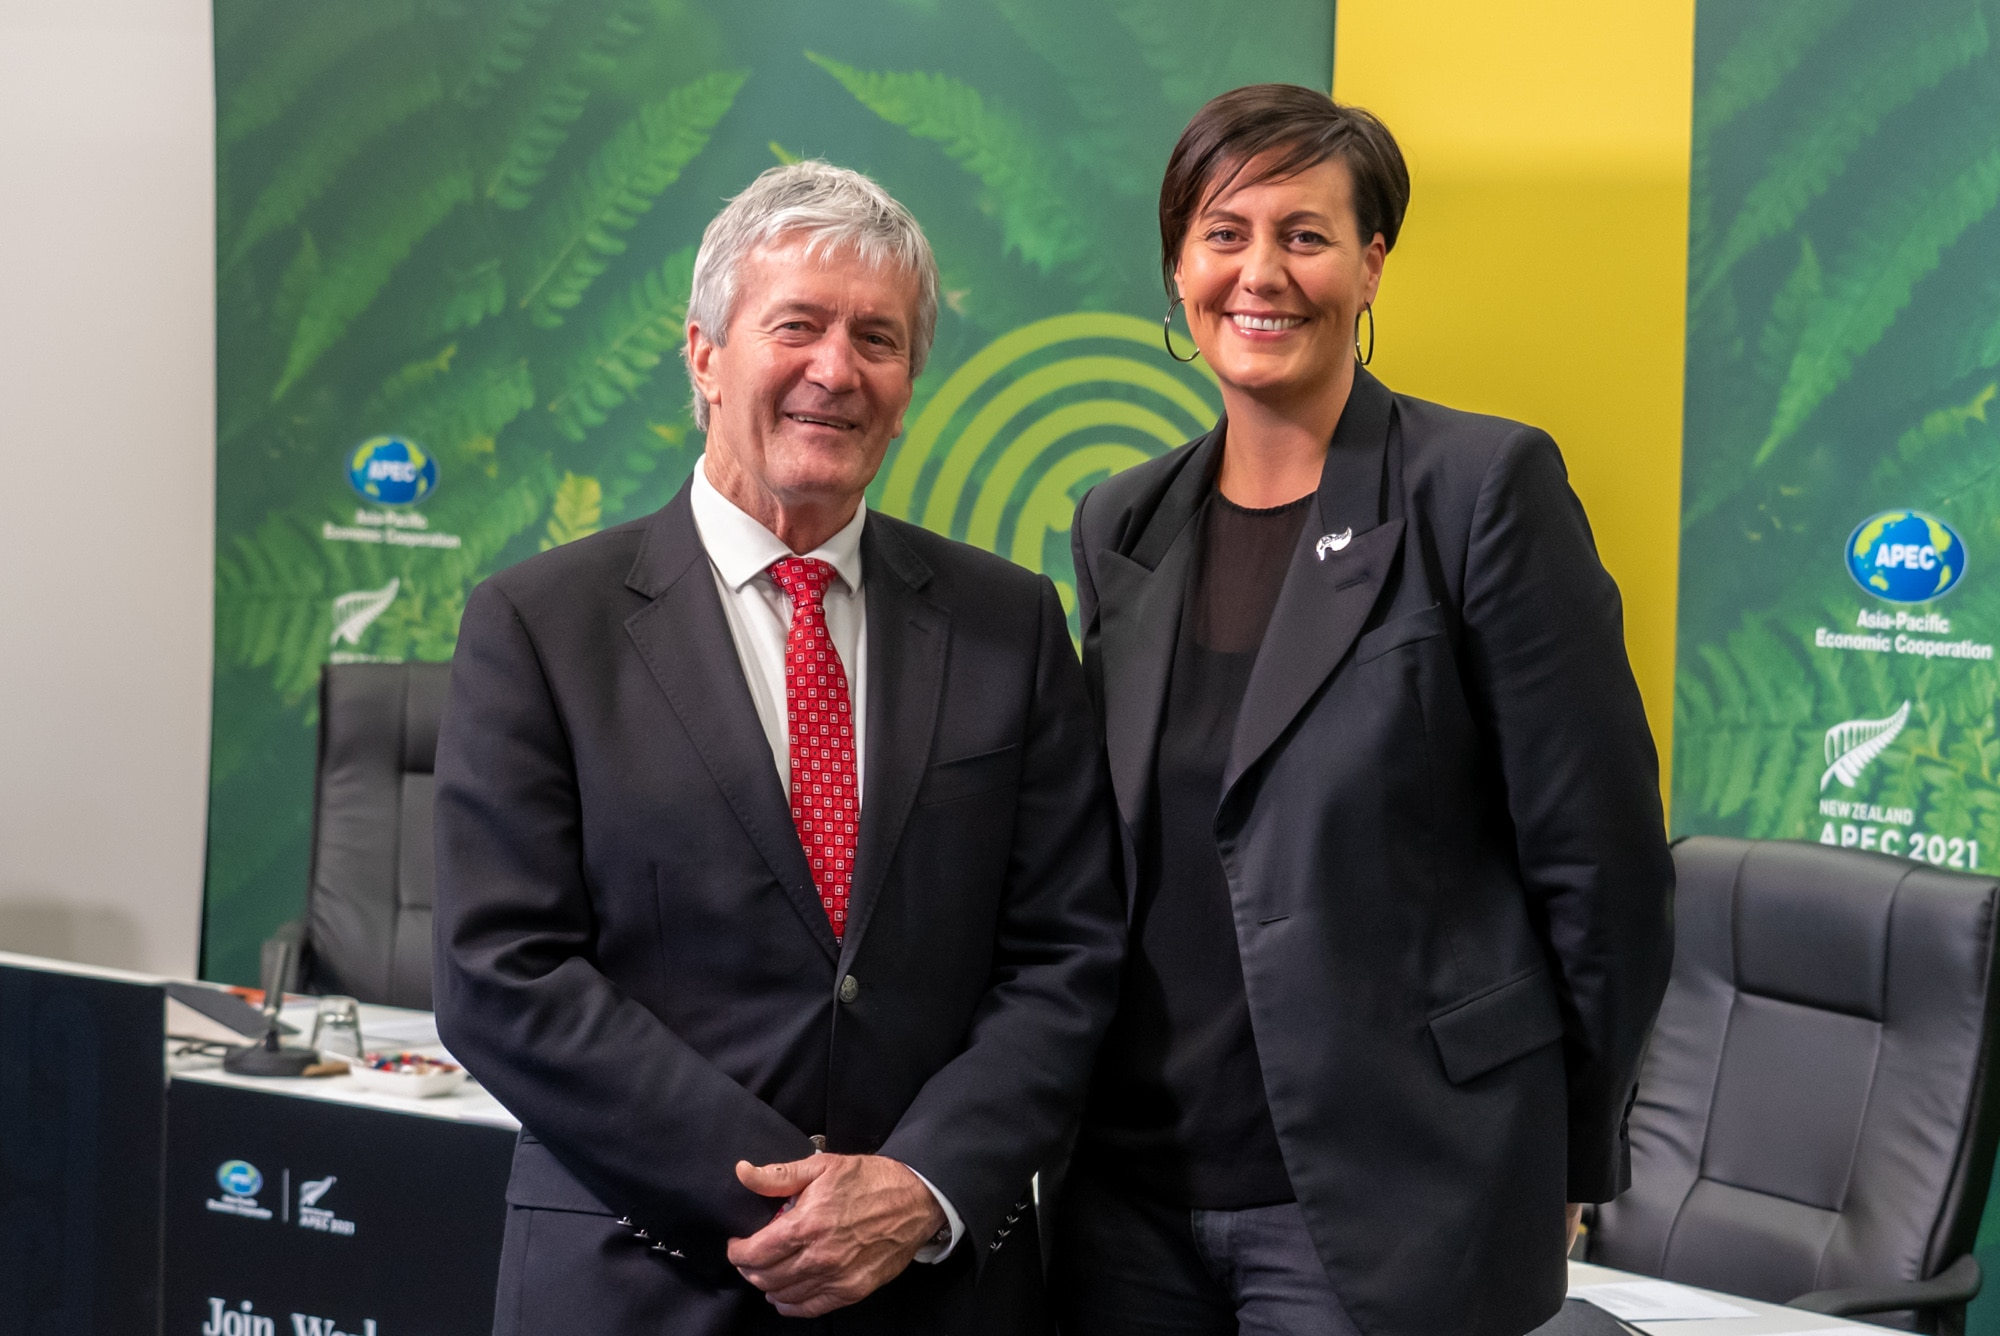 Rachel Taulelei and Trade Minister Damien O'Connor